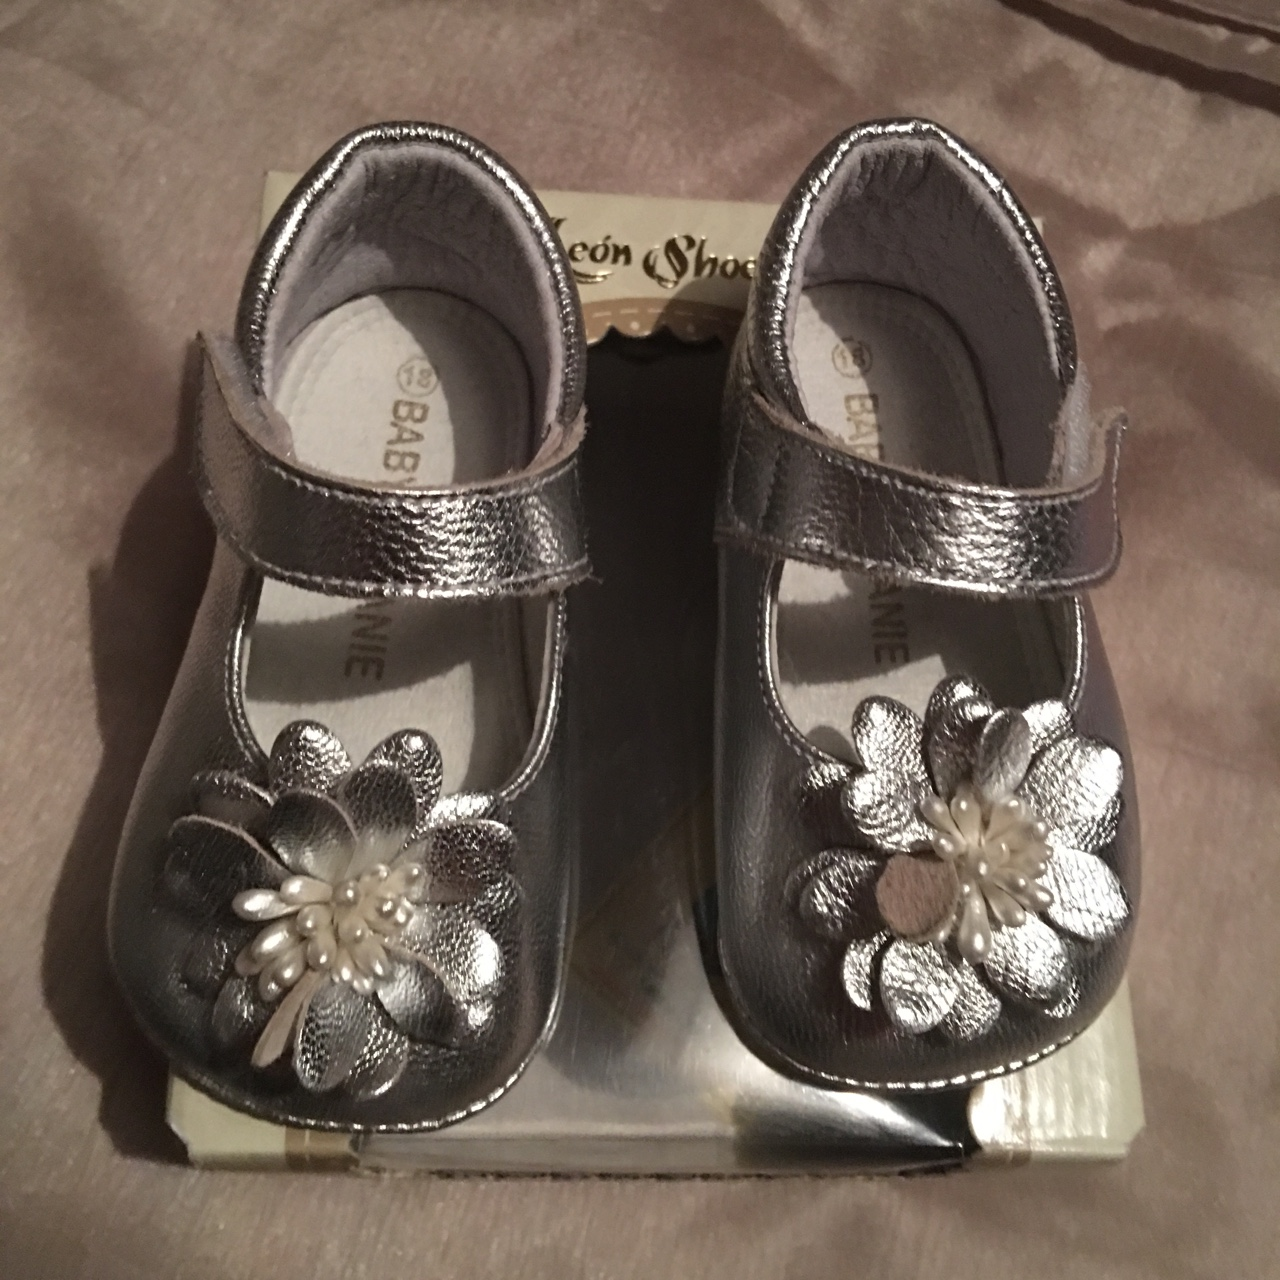 size 18 baby shoes